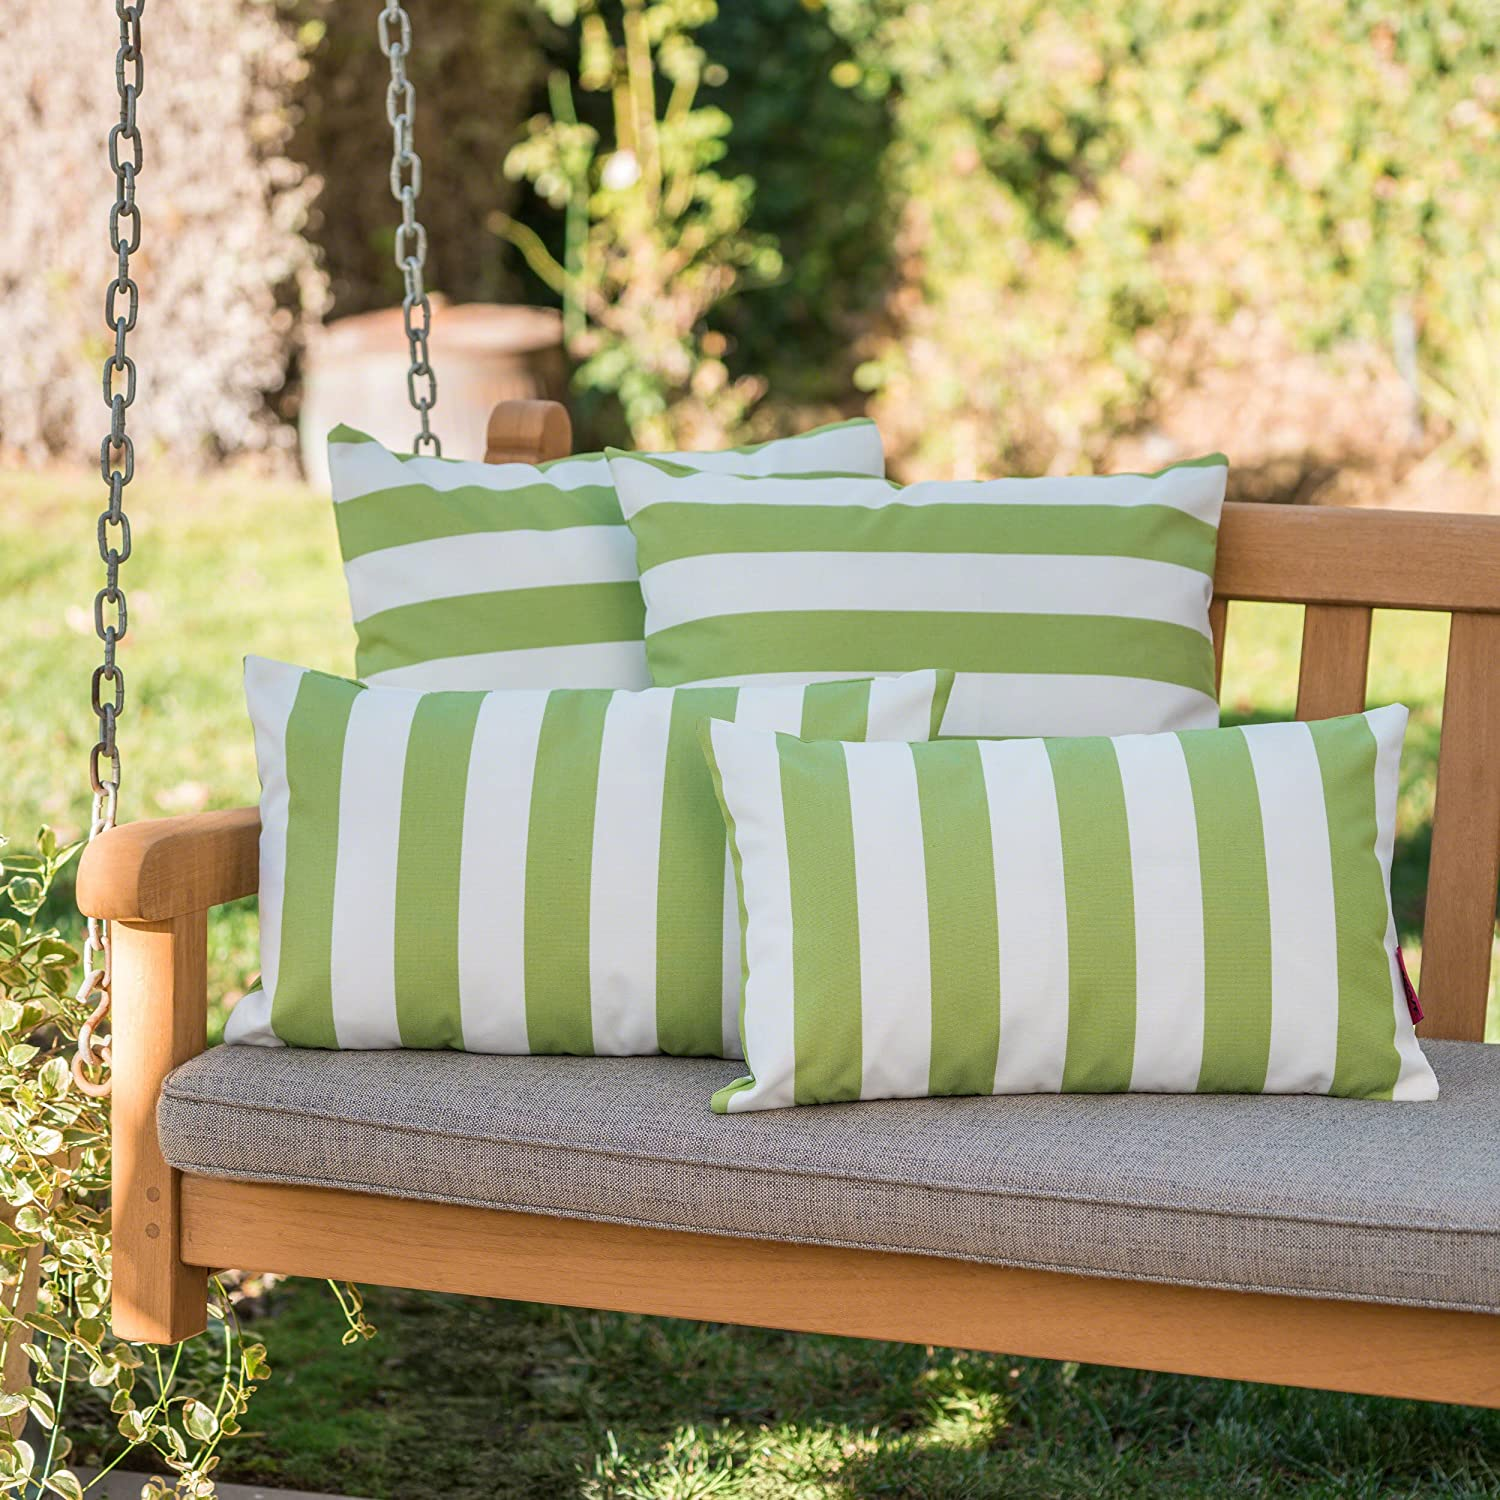 Christopher Knight Home Coronado Outdoor Green And White Striped Water Resistant Square And Rectangular Throw Pillows Set Of 4 Home Kitchen